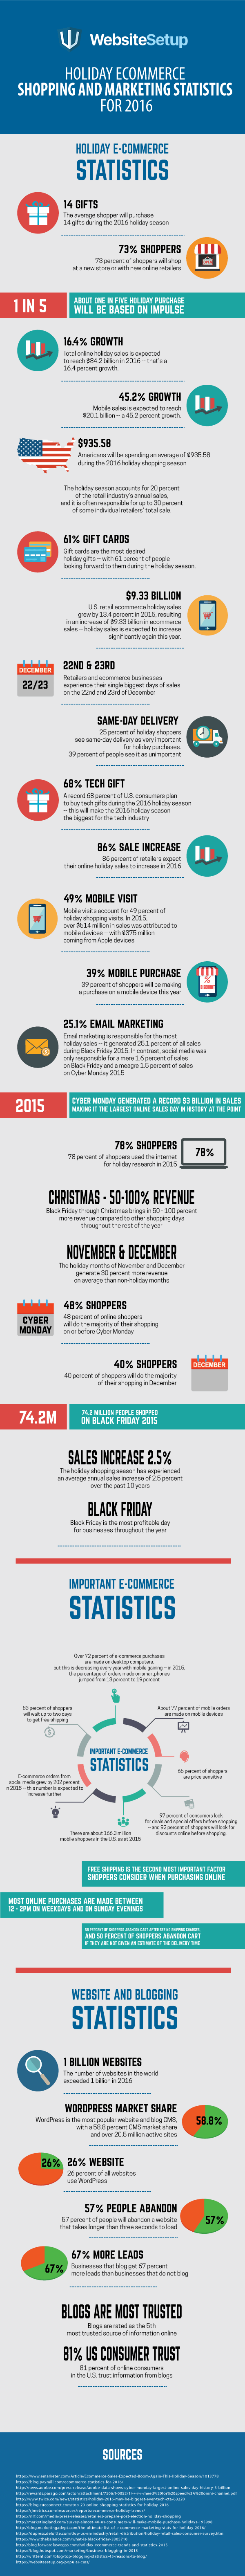 holiday ecommerce statistics